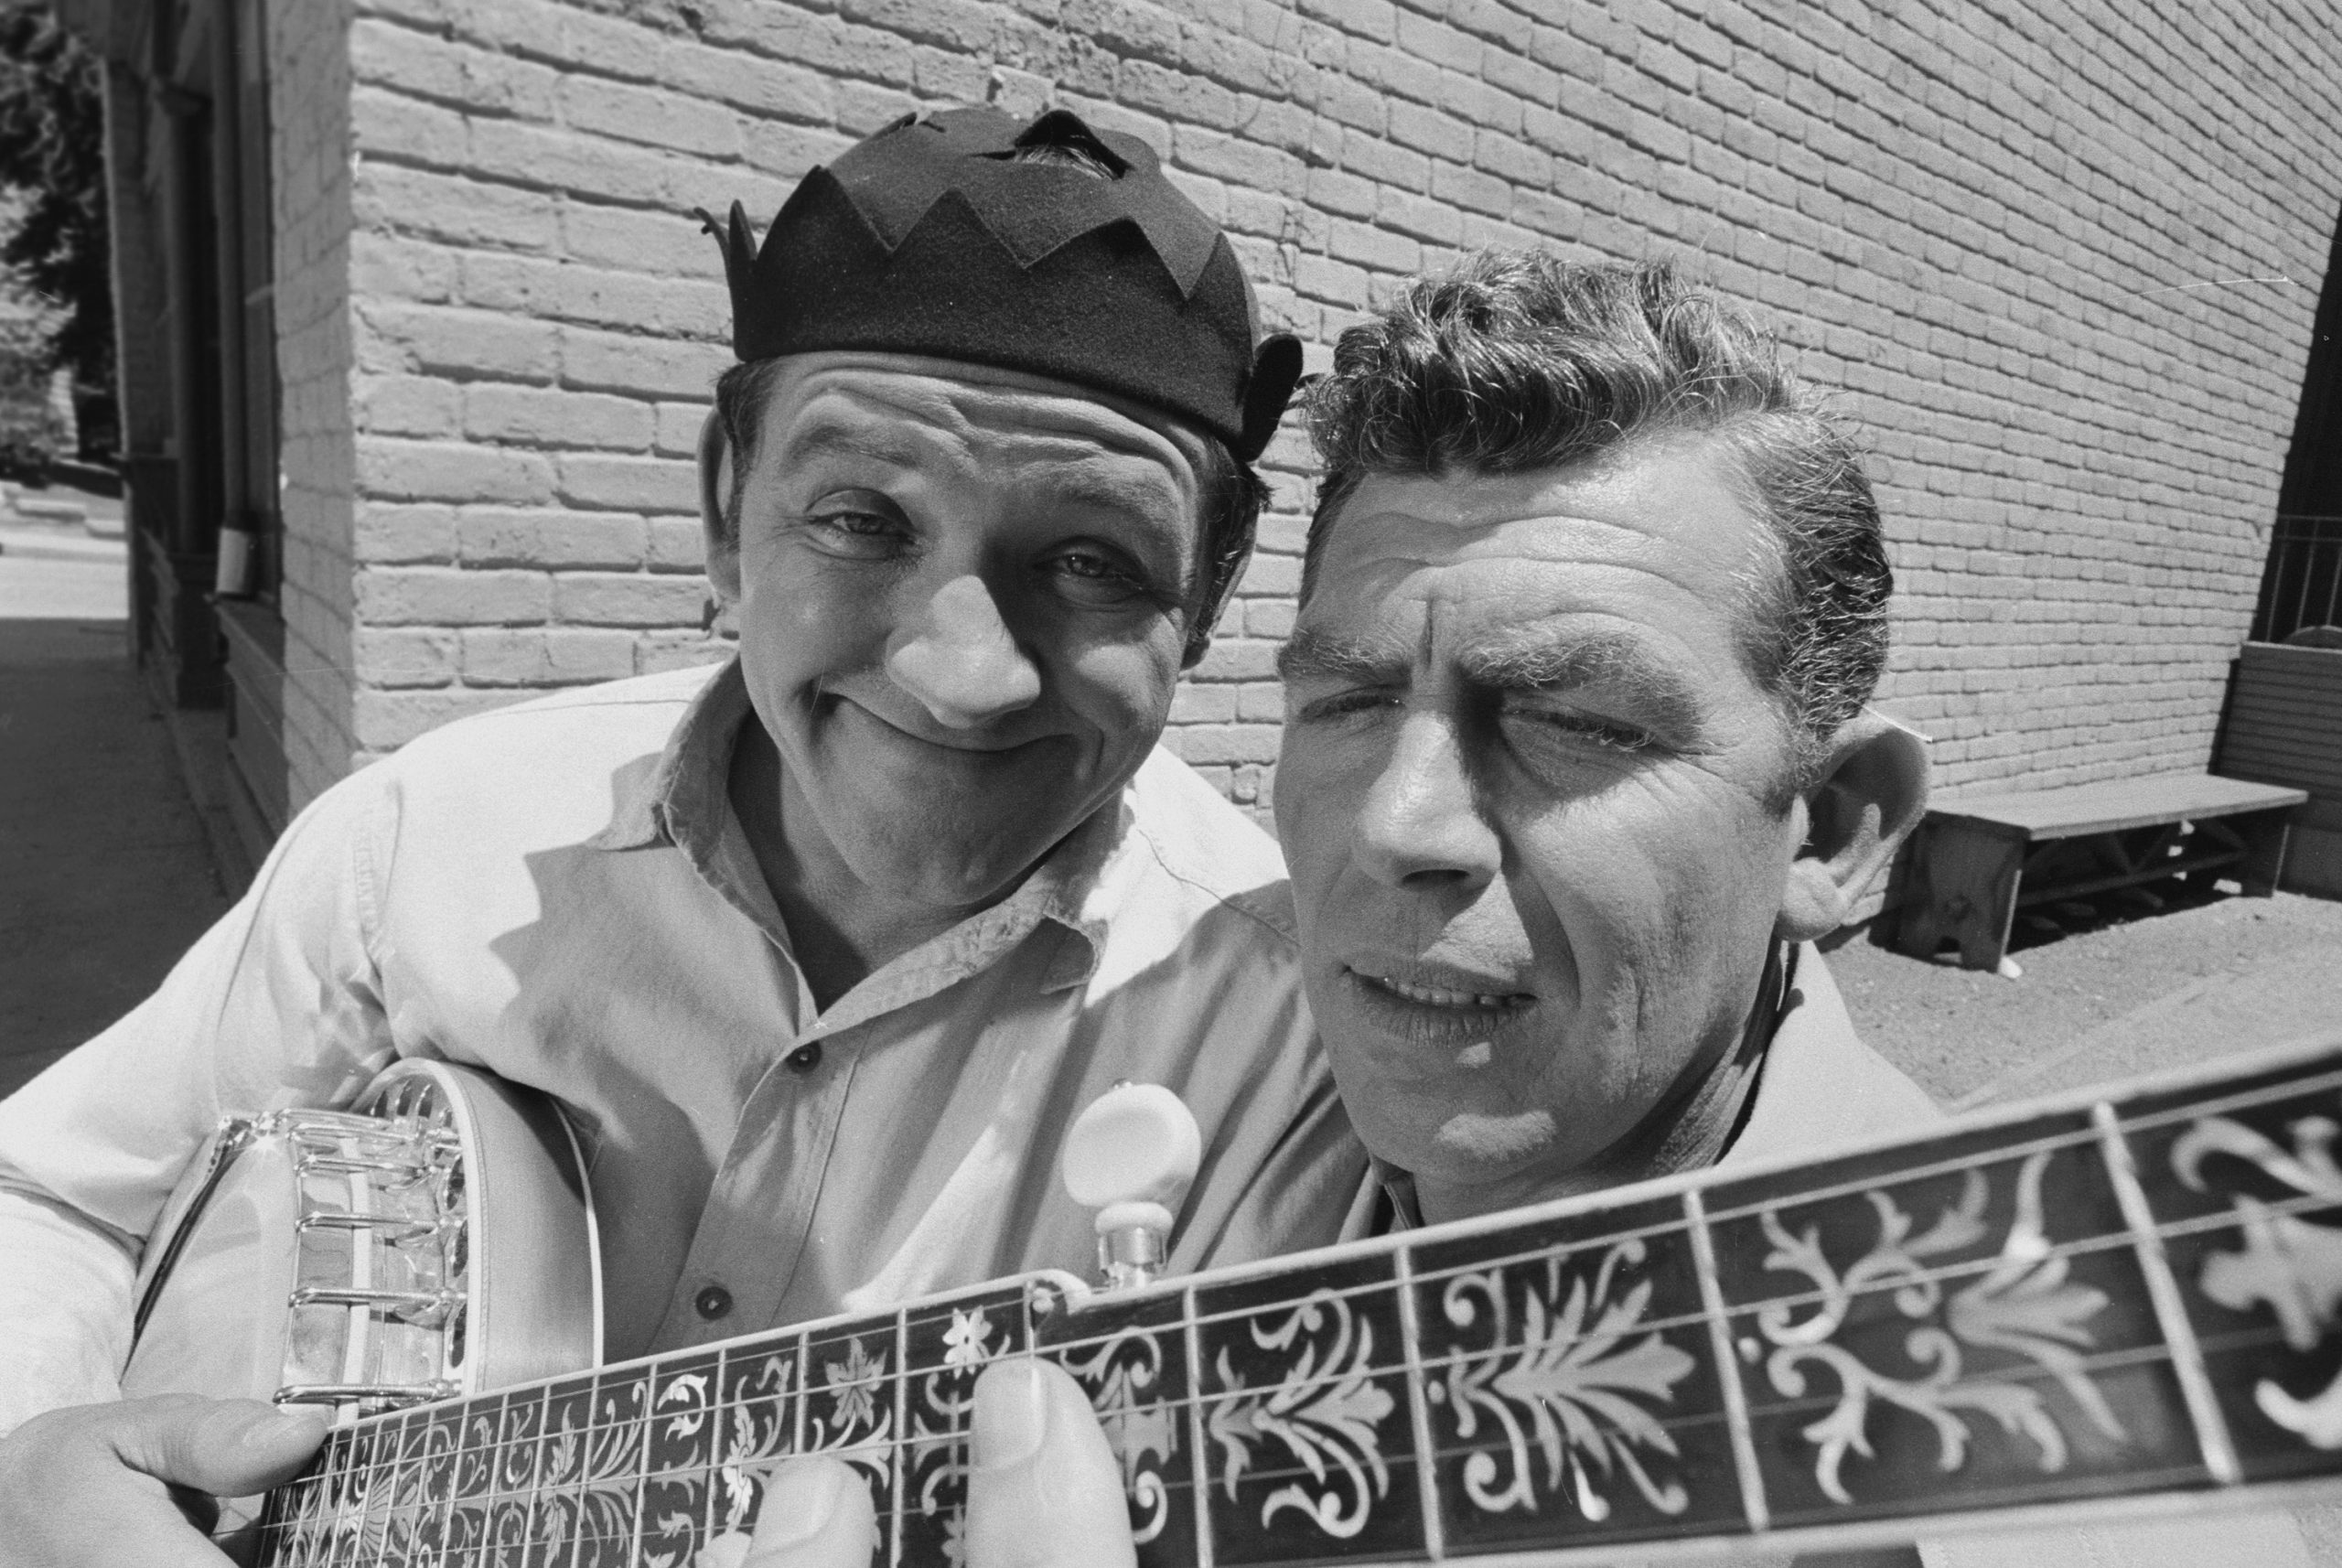 (Left to right): Actors George Lindsey as Goober Pyle and Andy Griffith as Sheriff Andy Taylor play the guitar on 'The Andy Griffith Show'